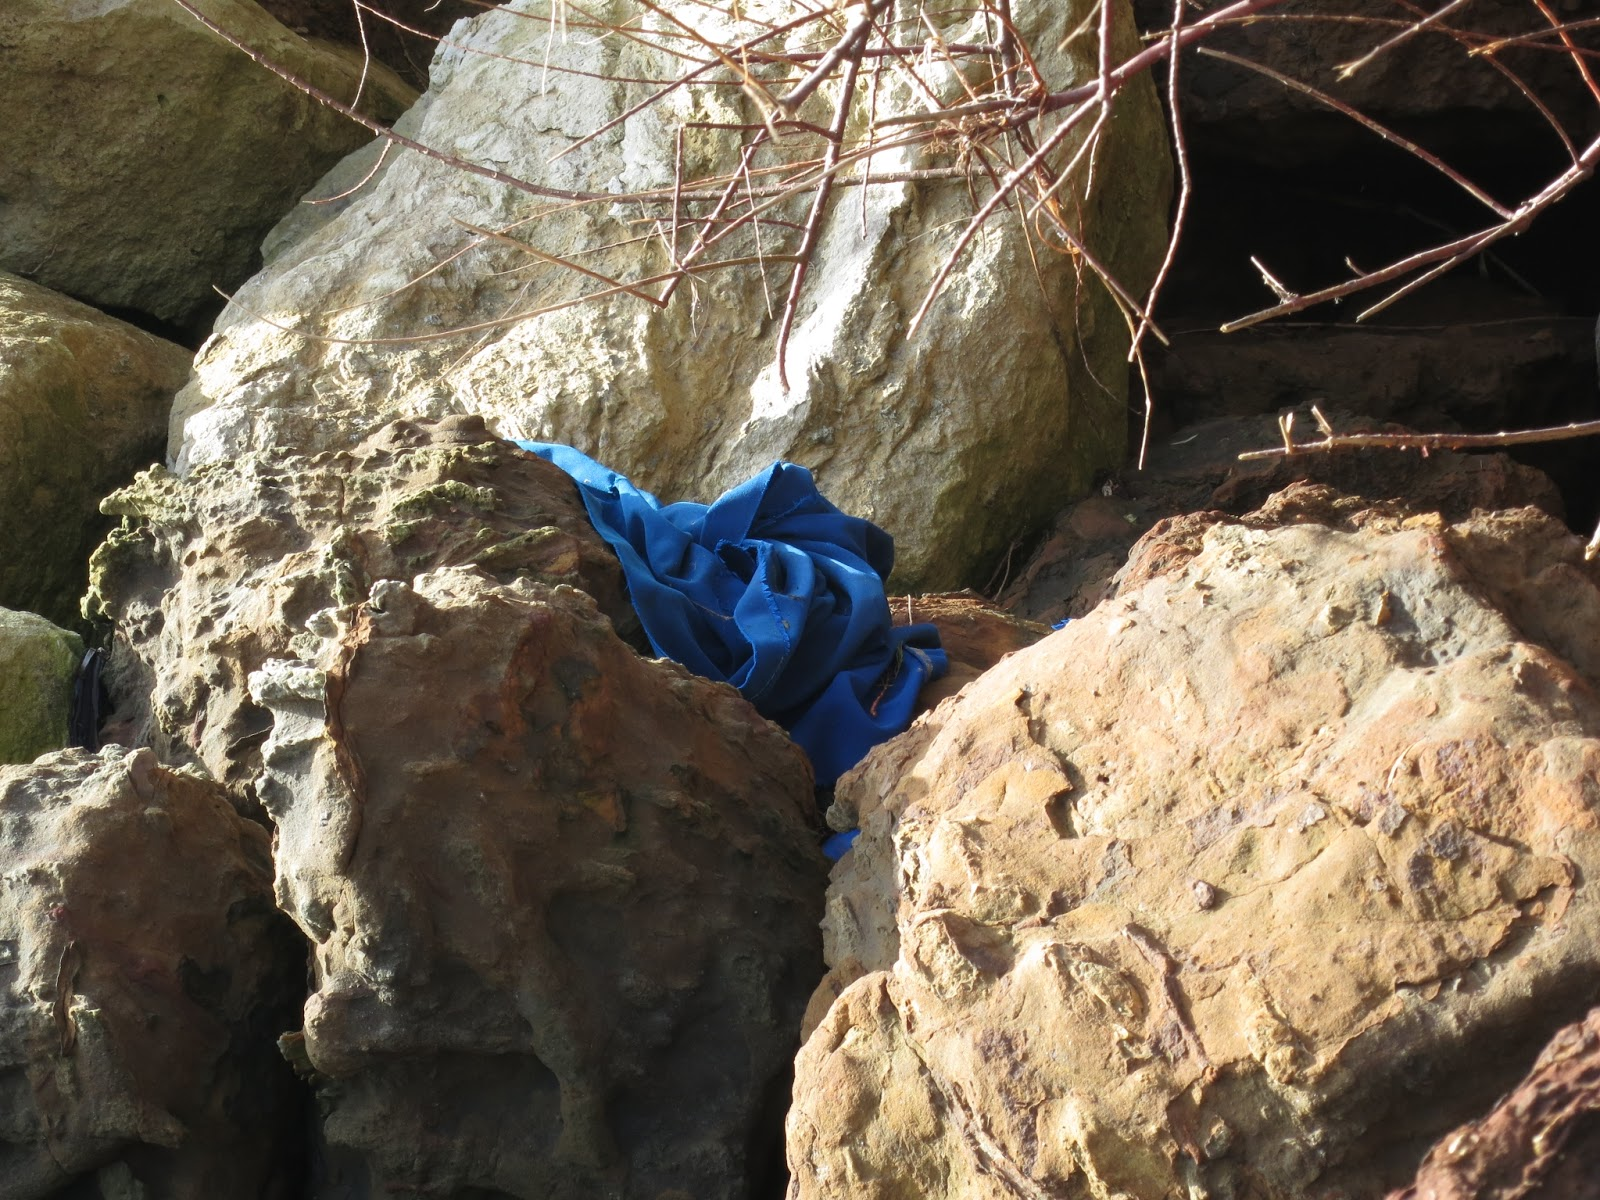 Blue cloth on rocks.